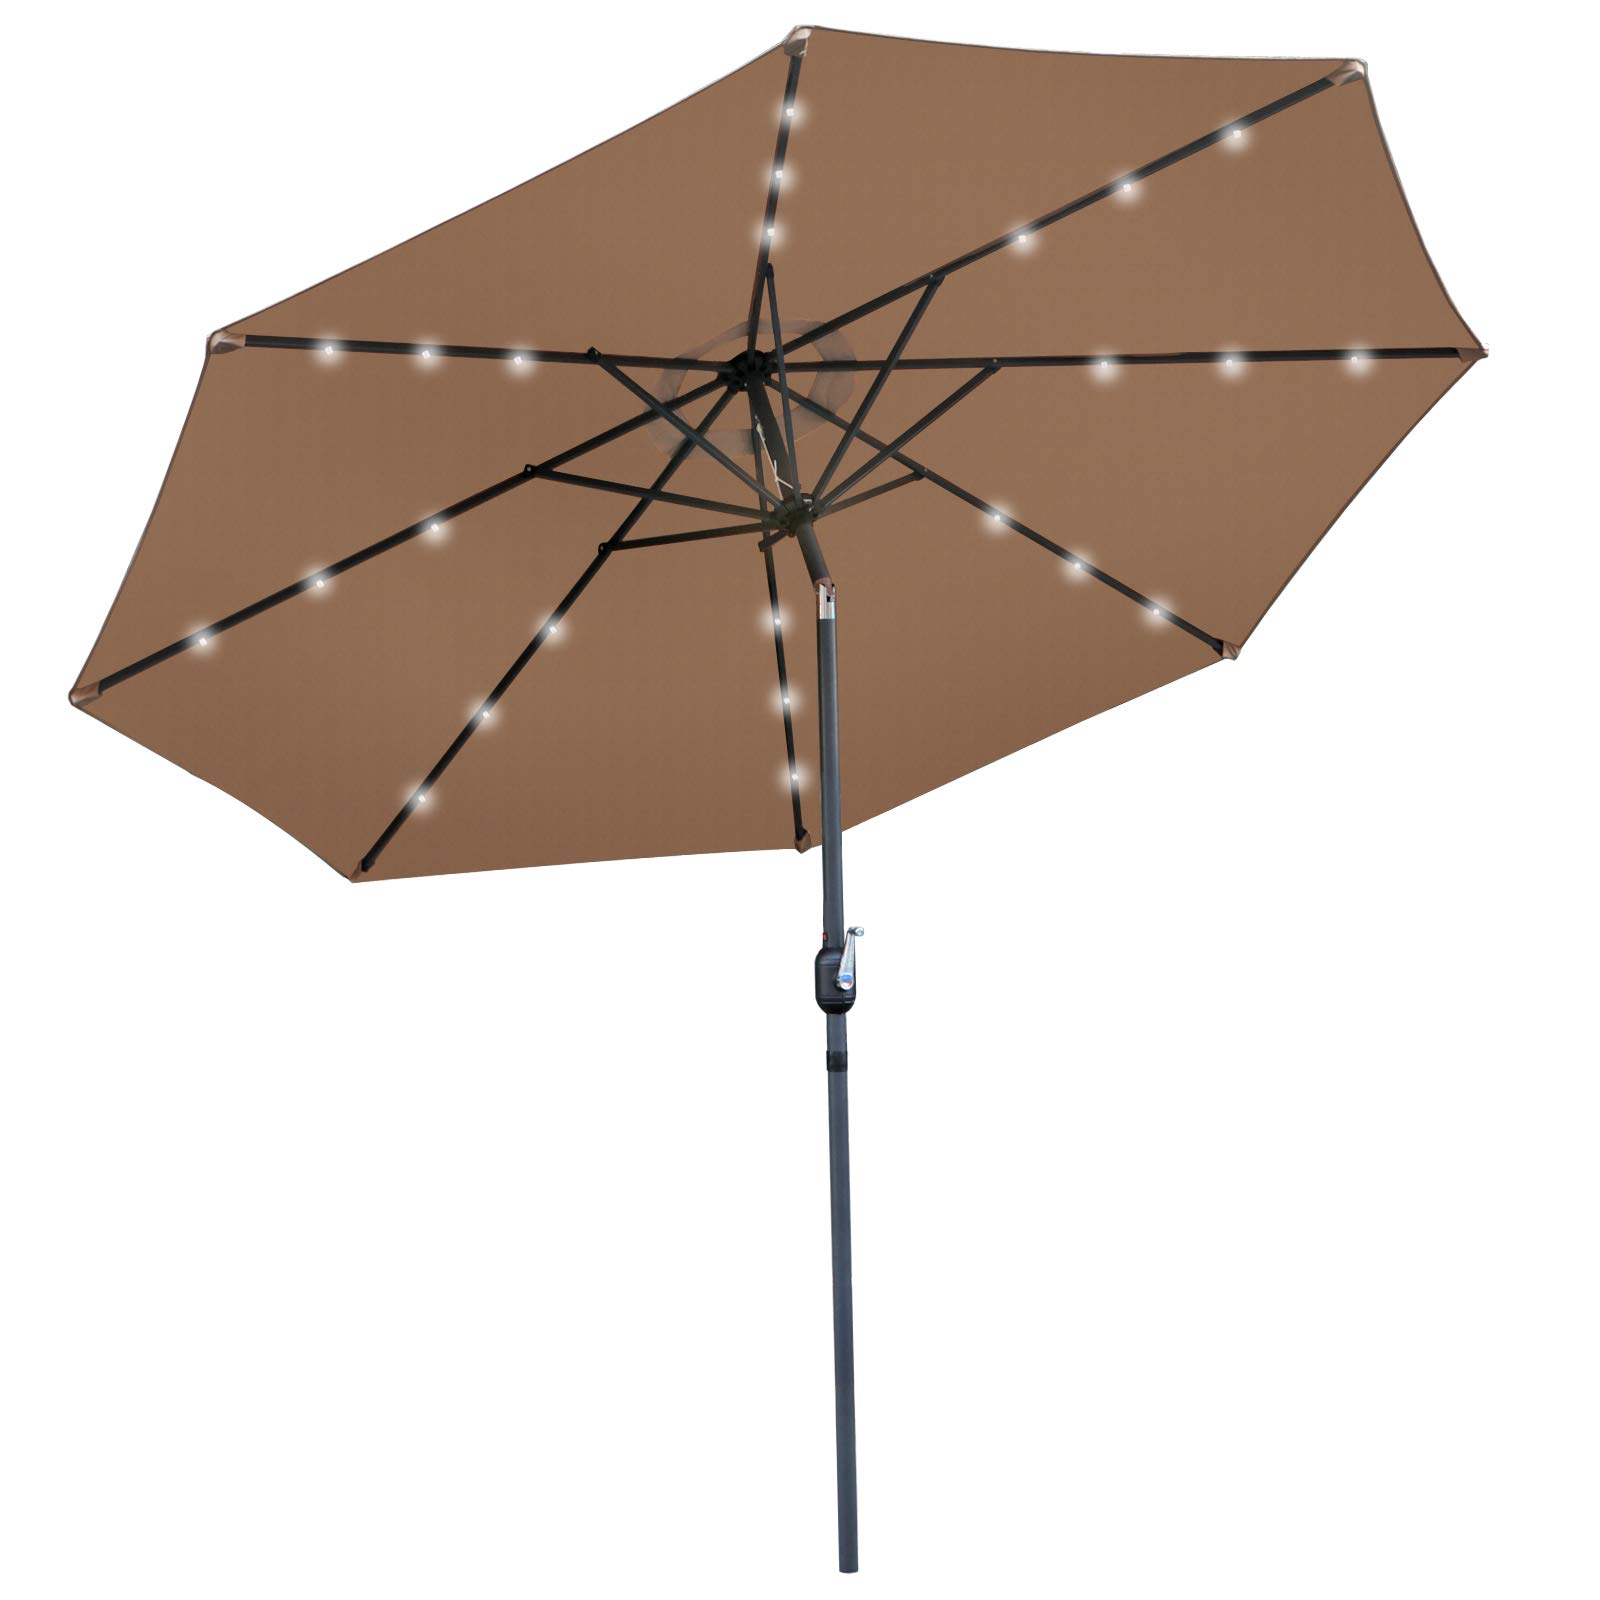 Nova Microdermabrasion 10 ft Solar LED Lighted Patio Outdoor Umbrella with Tilt Adjustment and Crank Lift, Perfect for Patio, Garden, Backyard, Deck, Poolside, Balcony and Beach (Tan)